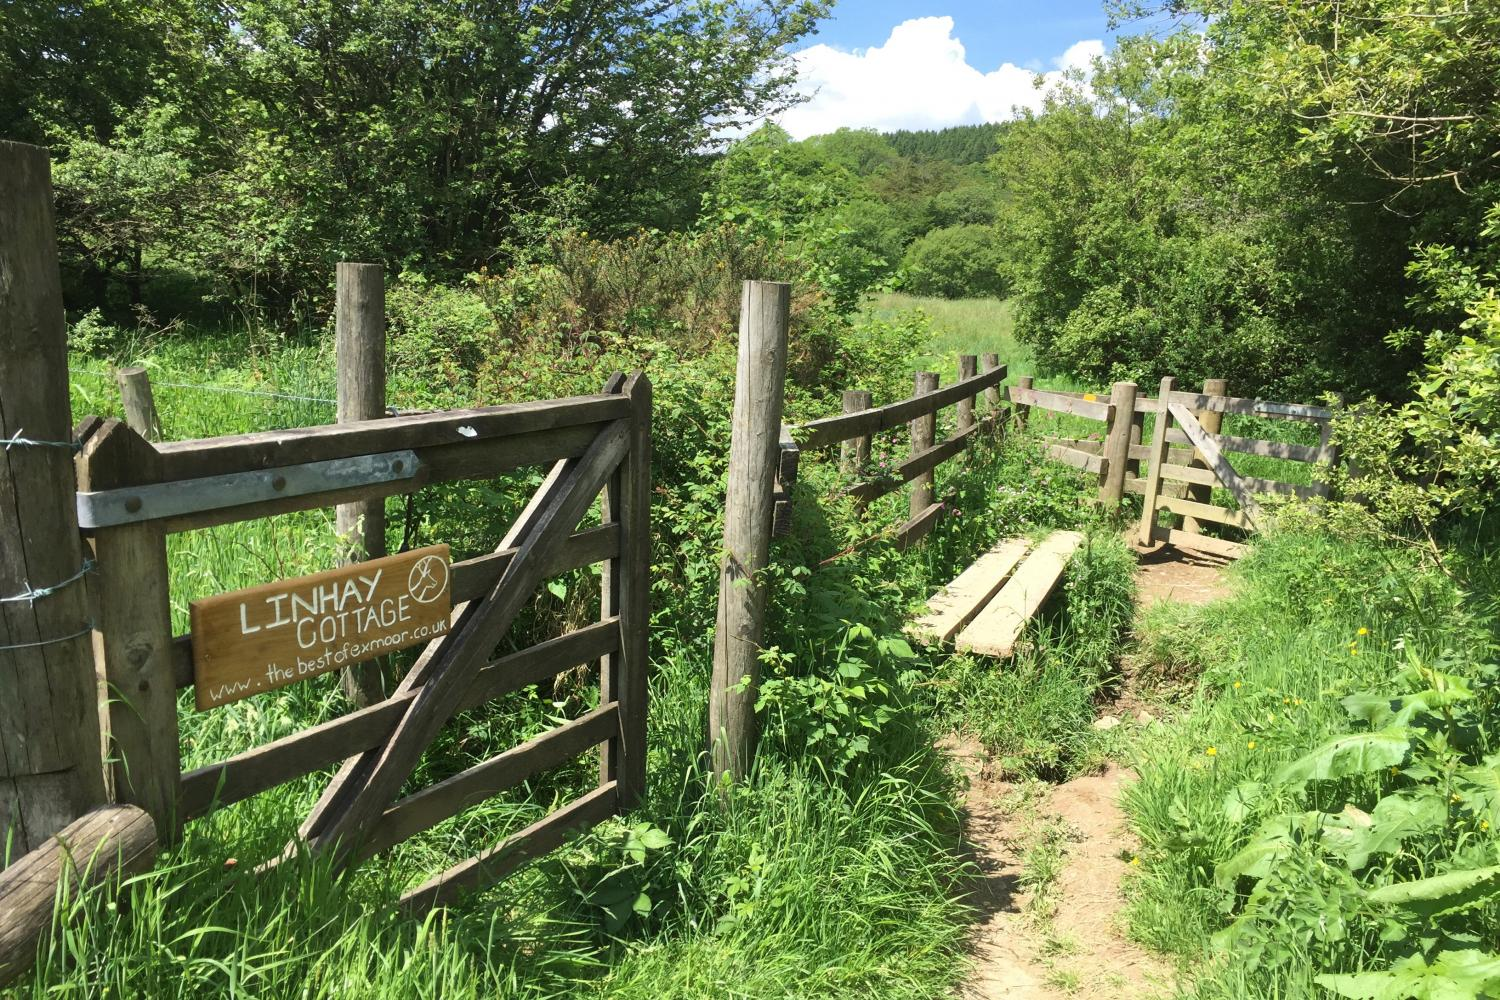 Gate at the bottom of the fields, footpath along the Barle to Withypool and Landacre Bridge